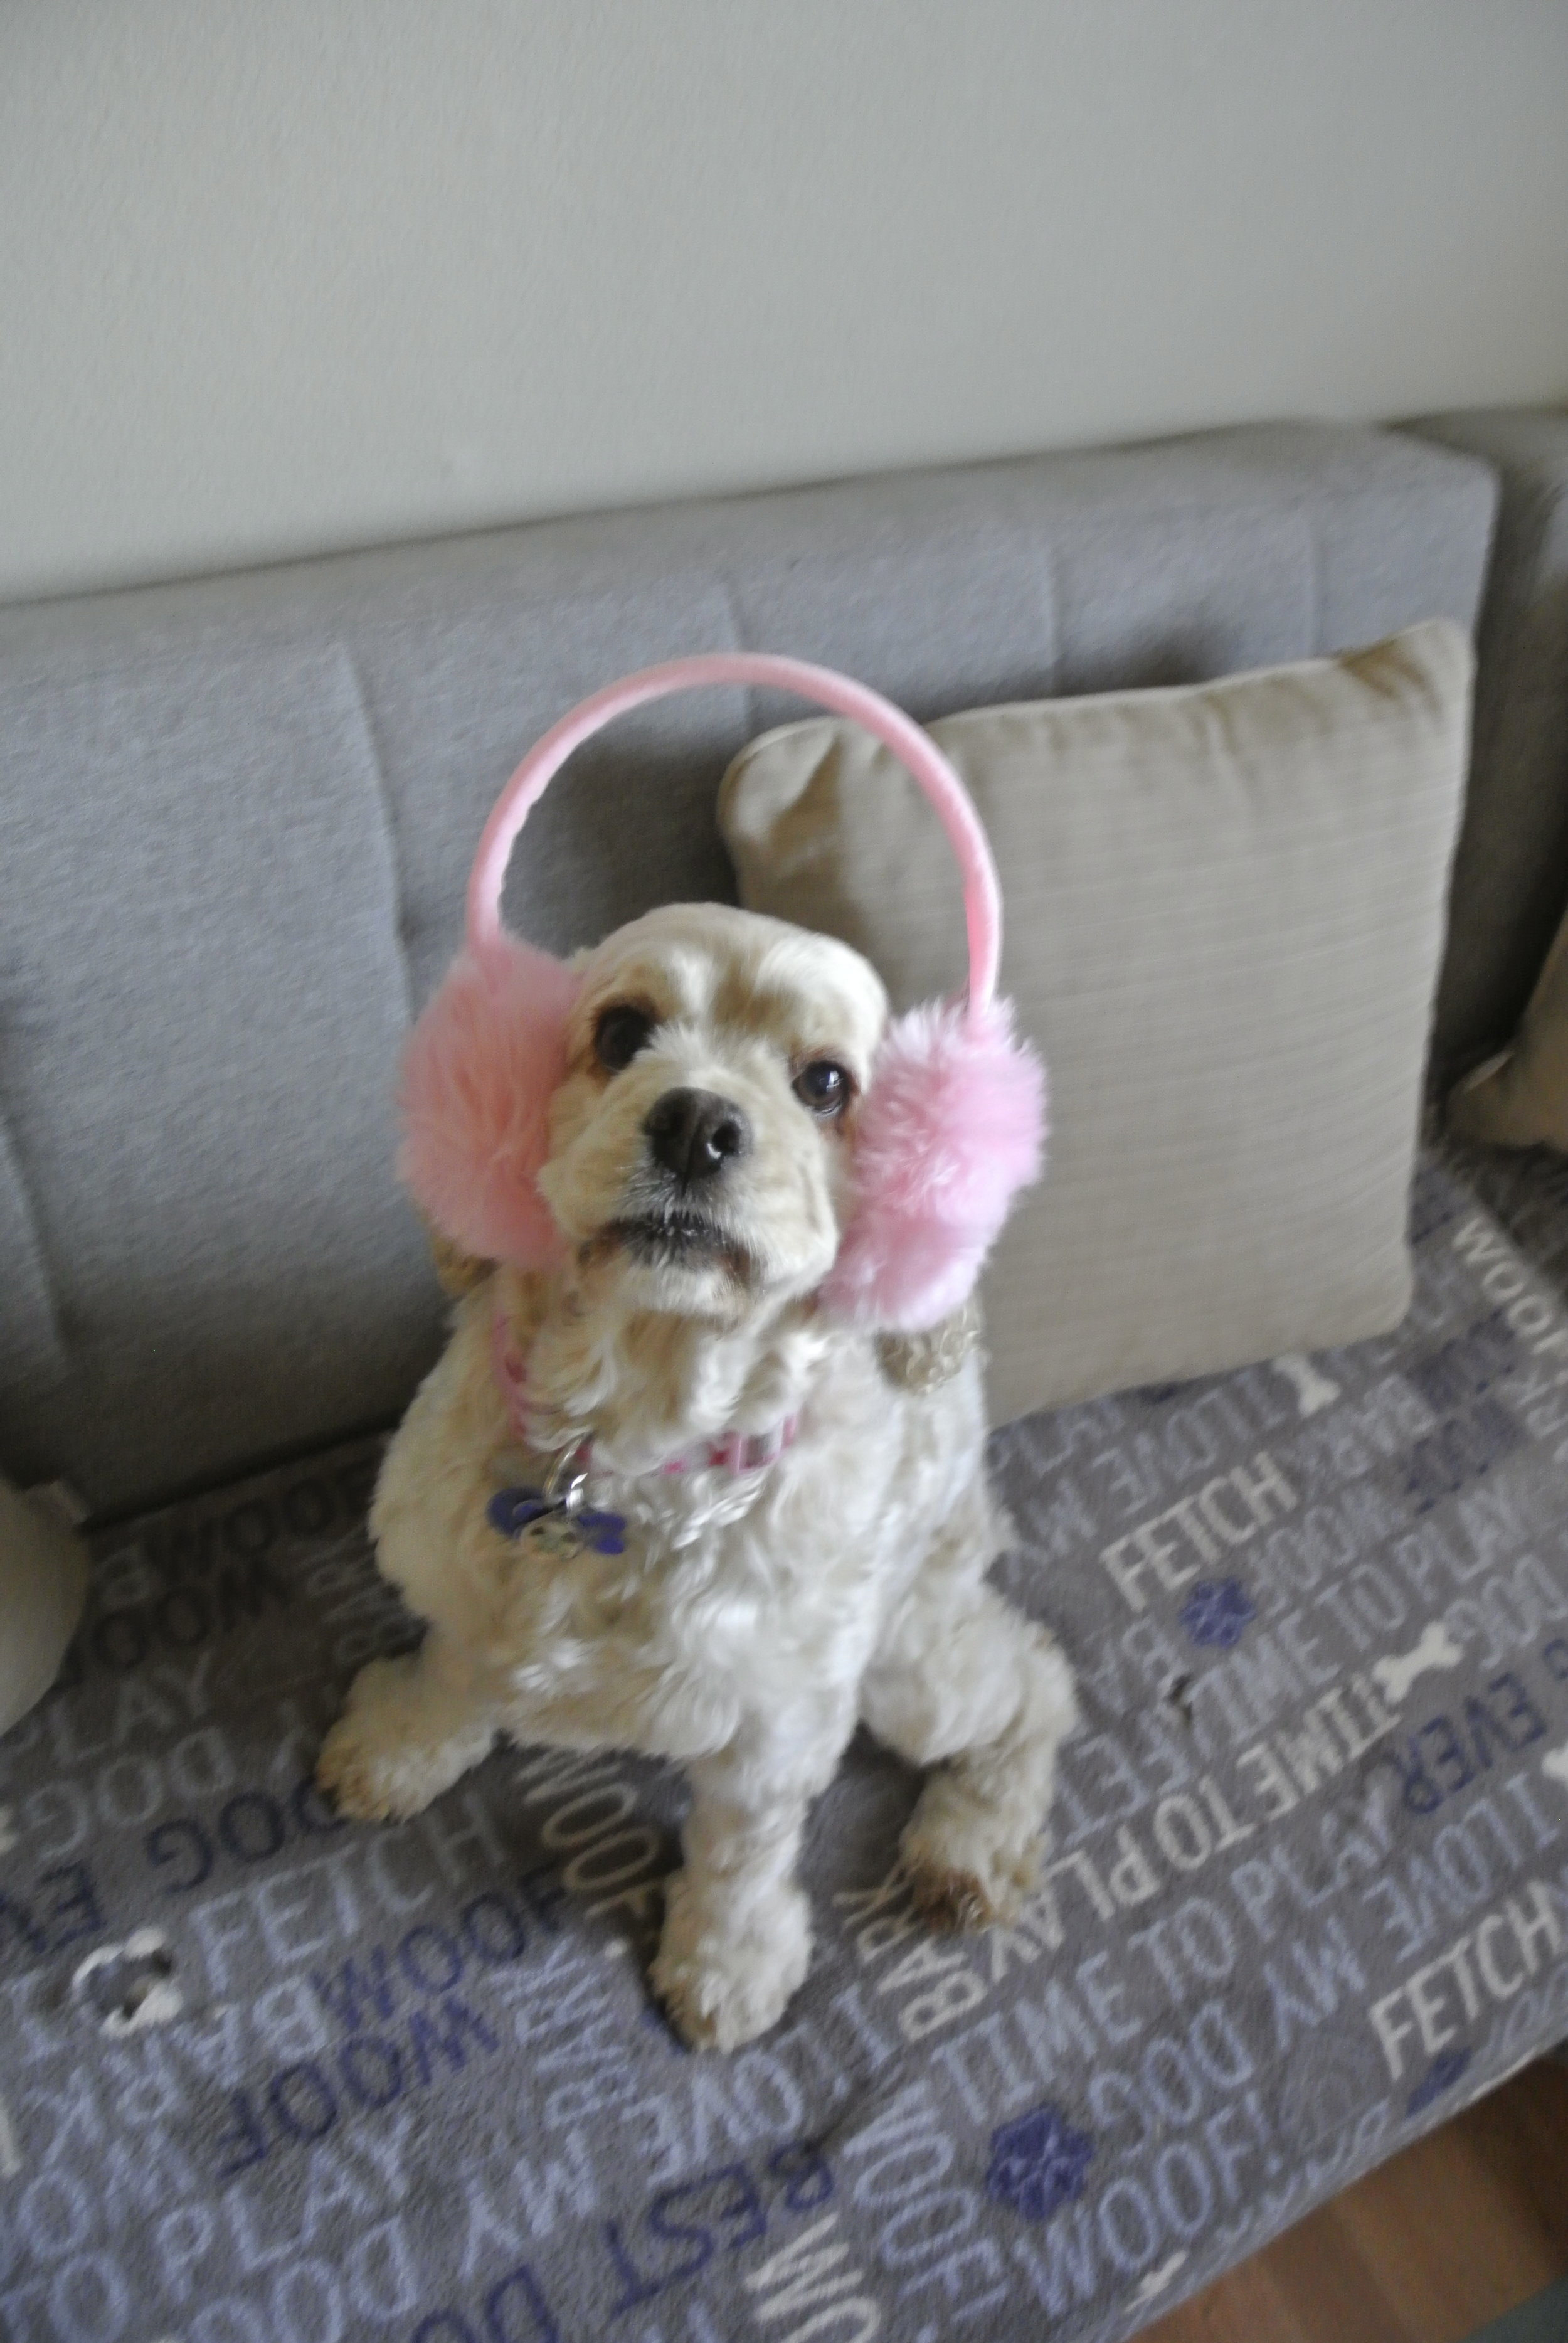 Cold day in LA: Chilly Lily in her earmuffs!